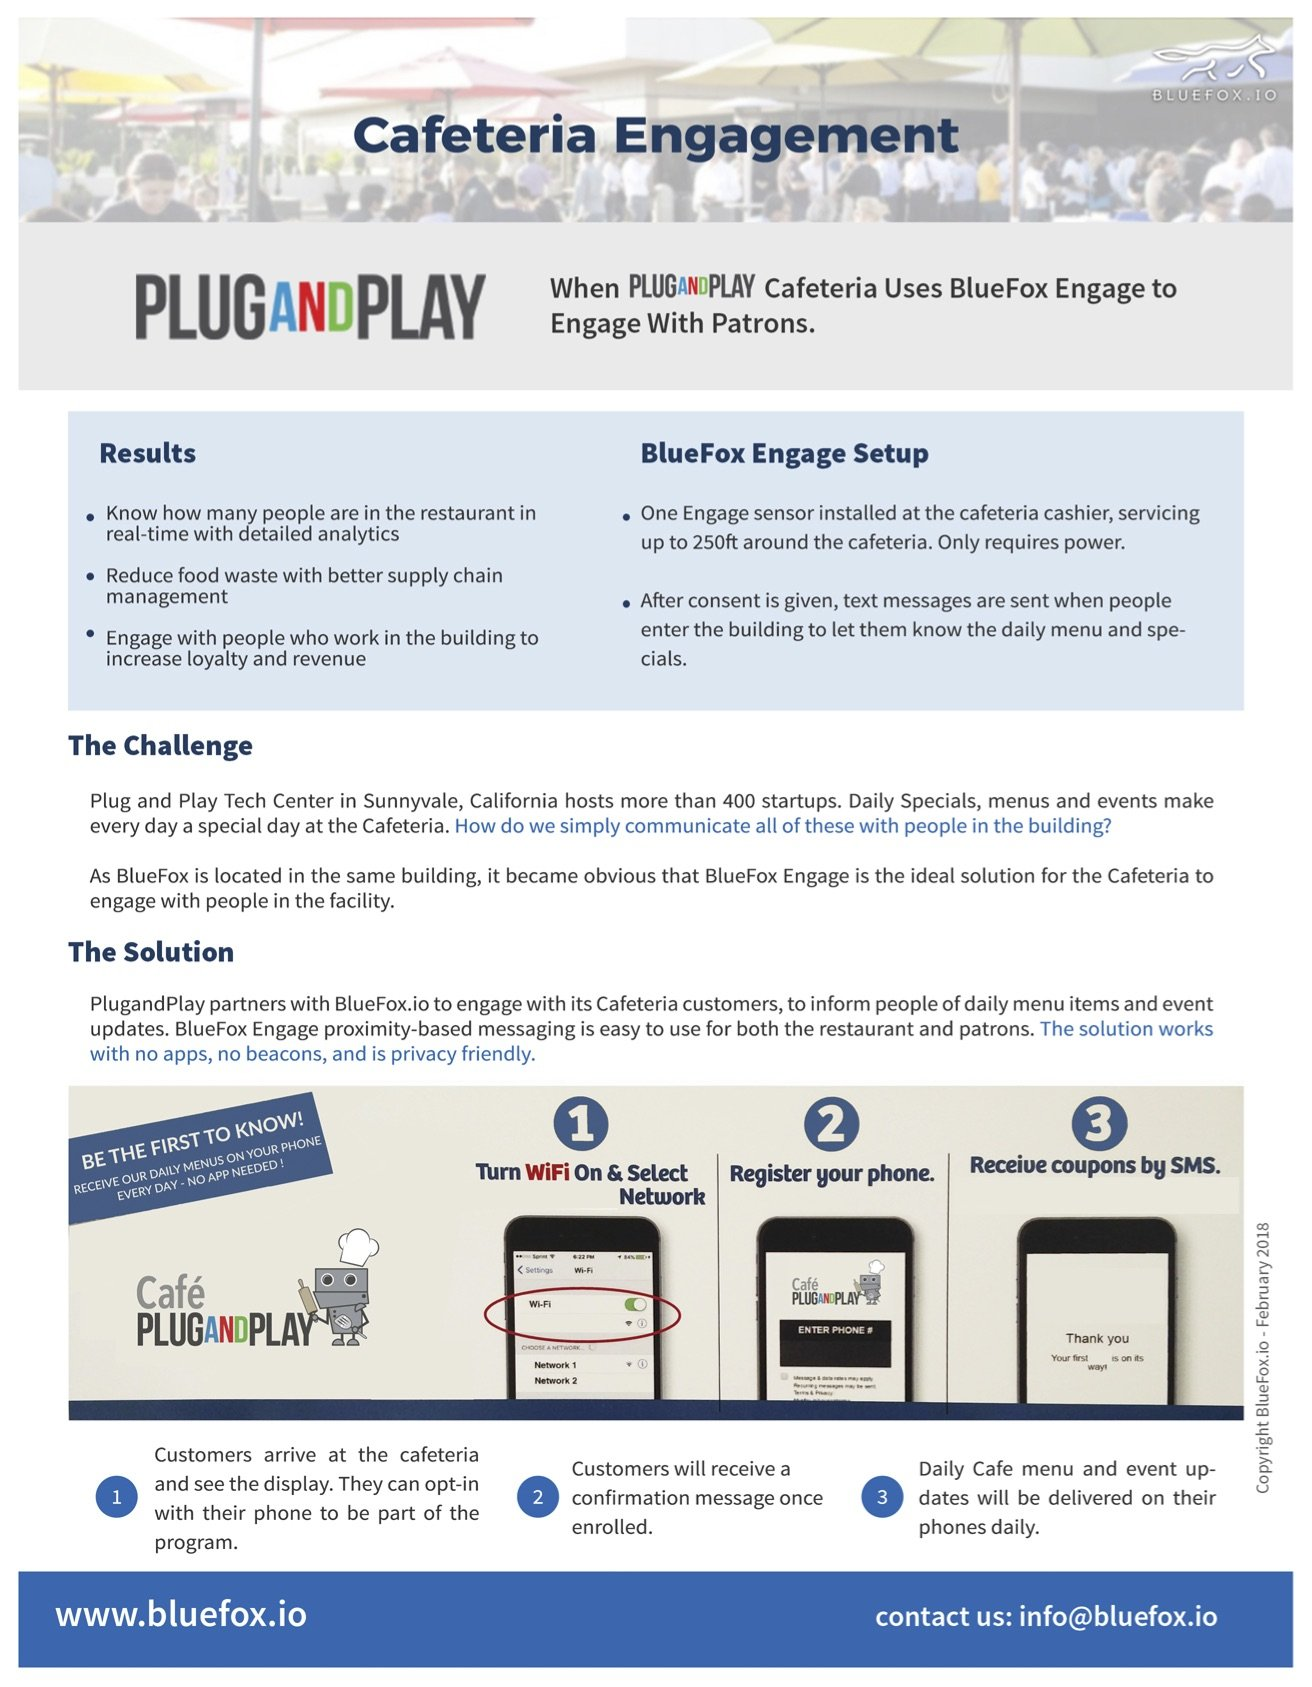 BlueFox Engage use case for cafes